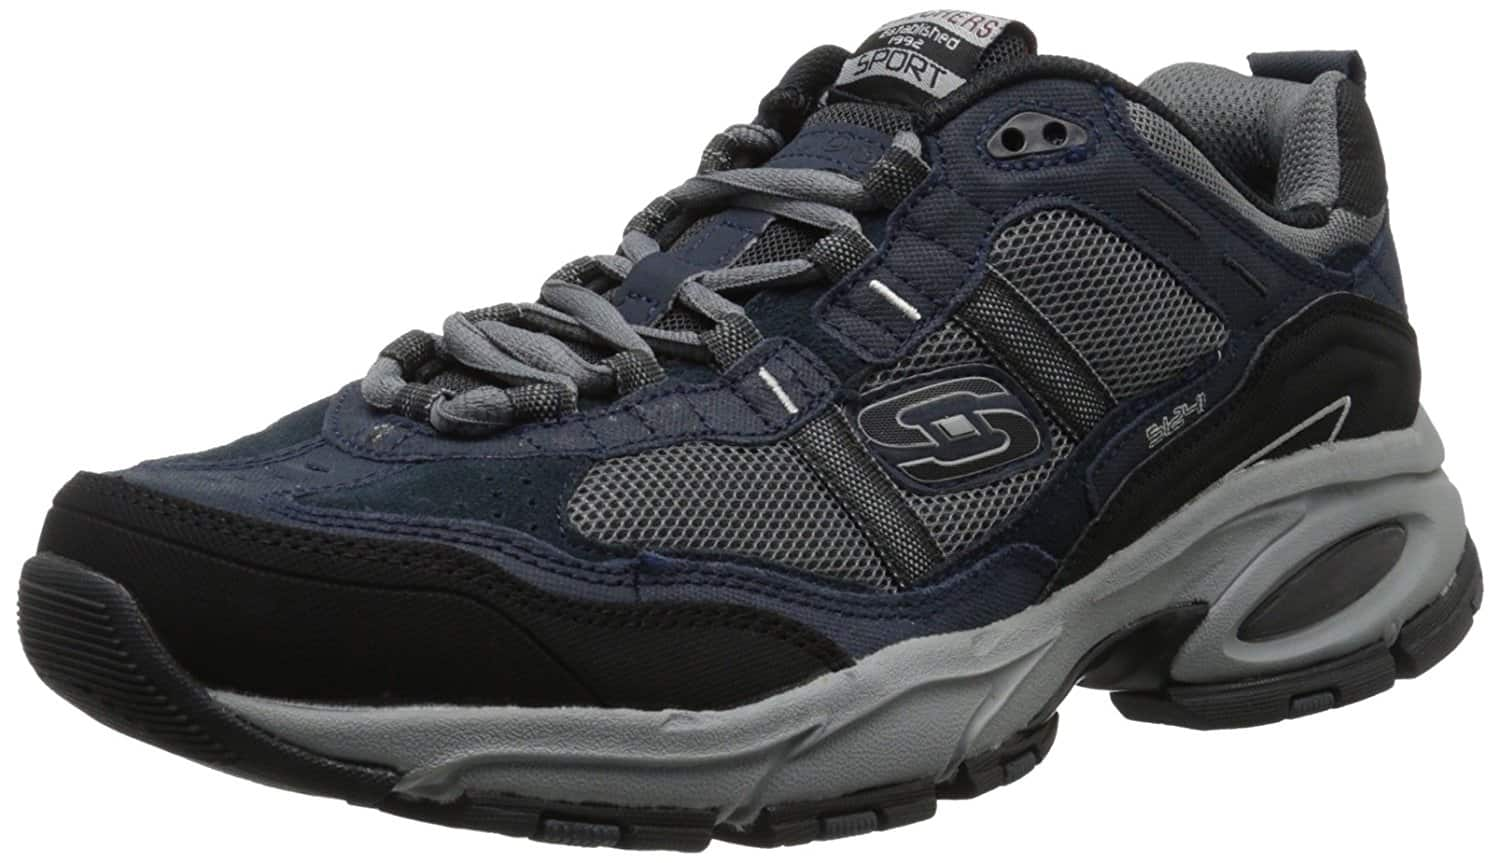 Skechers Sport Men's Vigor 2.0 Trait Memory Foam Sneaker All Size $33.46